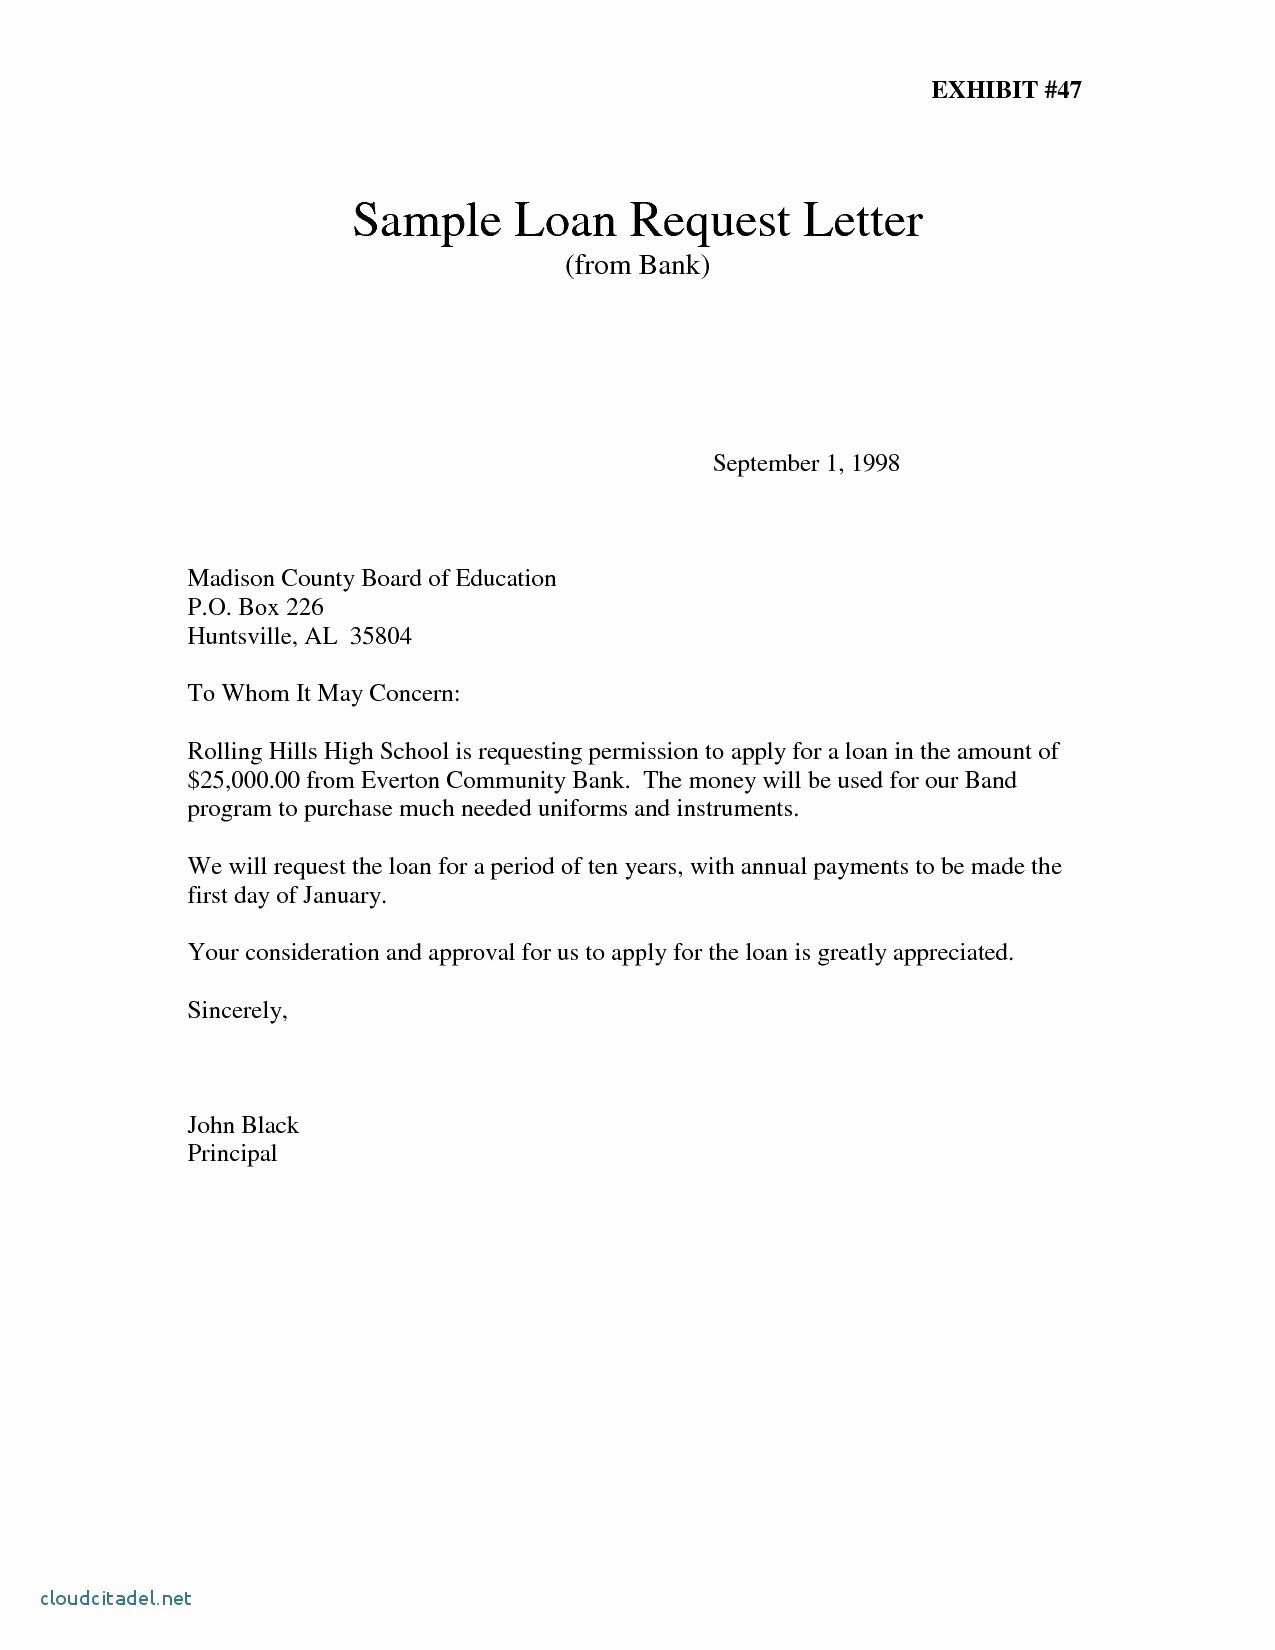 Personal Loan Proposal Template Beautiful Loan Proposal Letter To Bank Awesome Bank Loan Proposal Business Proposal Template Lettering Proposal Templates